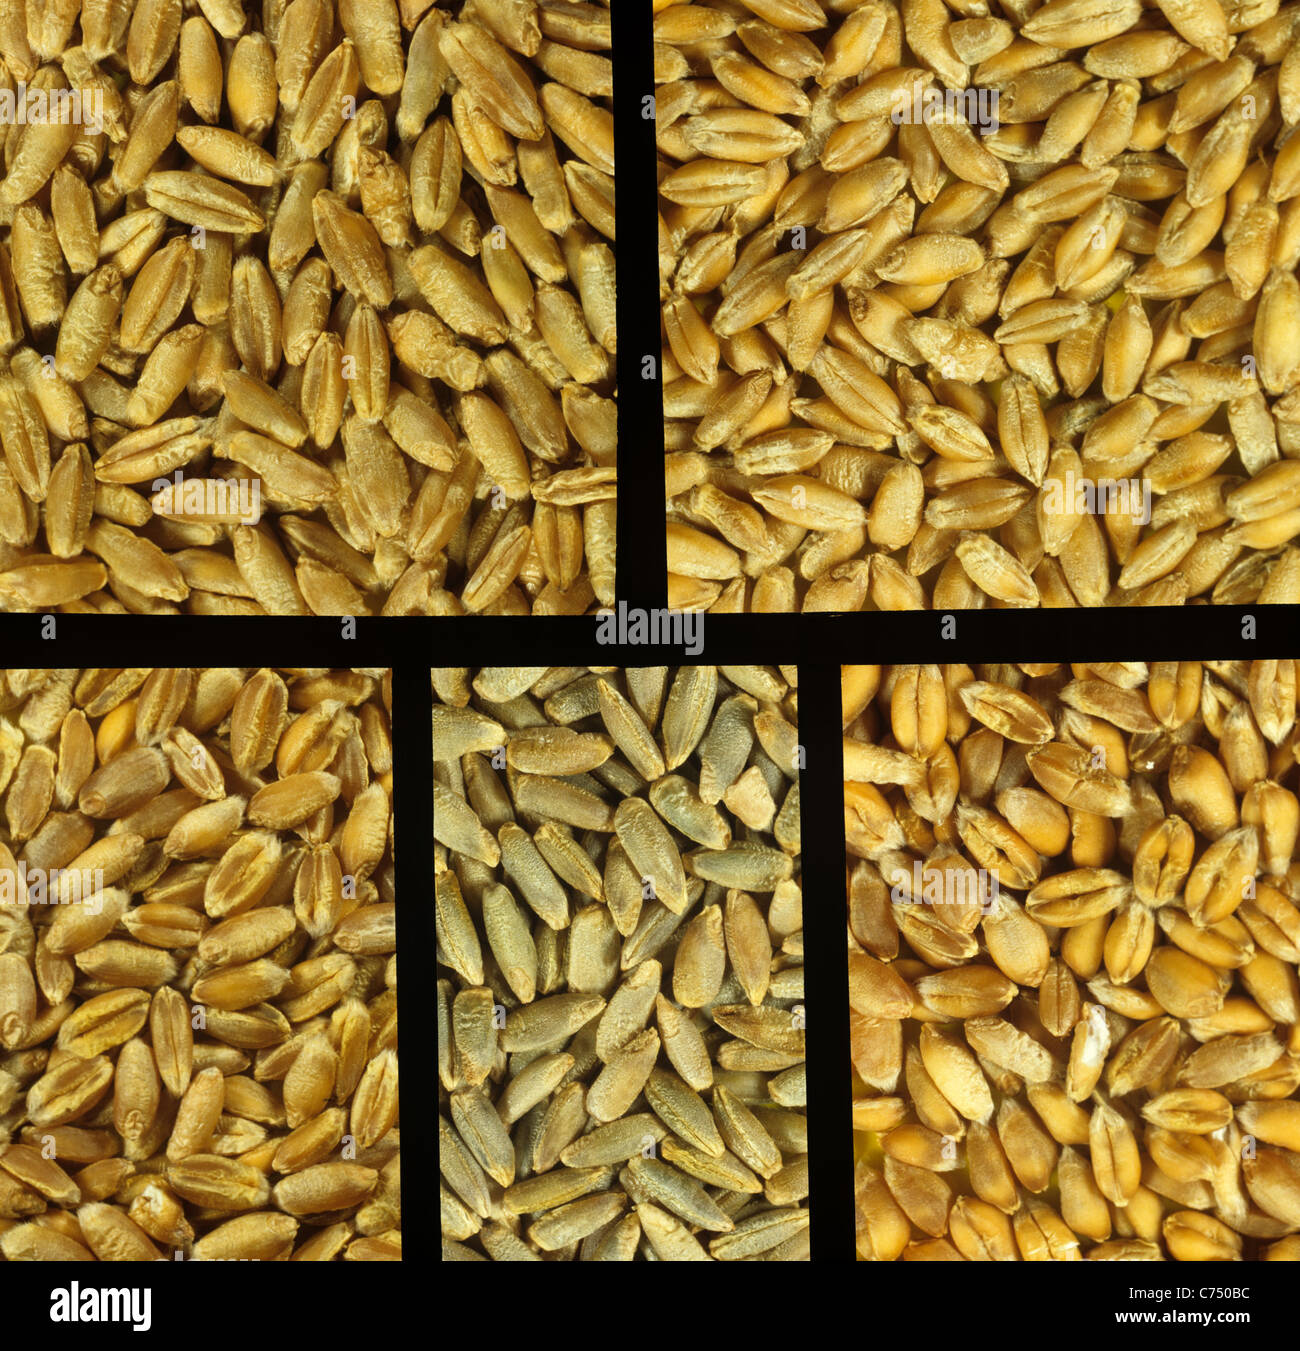 triticale rye and wheat grains stock photo 38833408 alamy